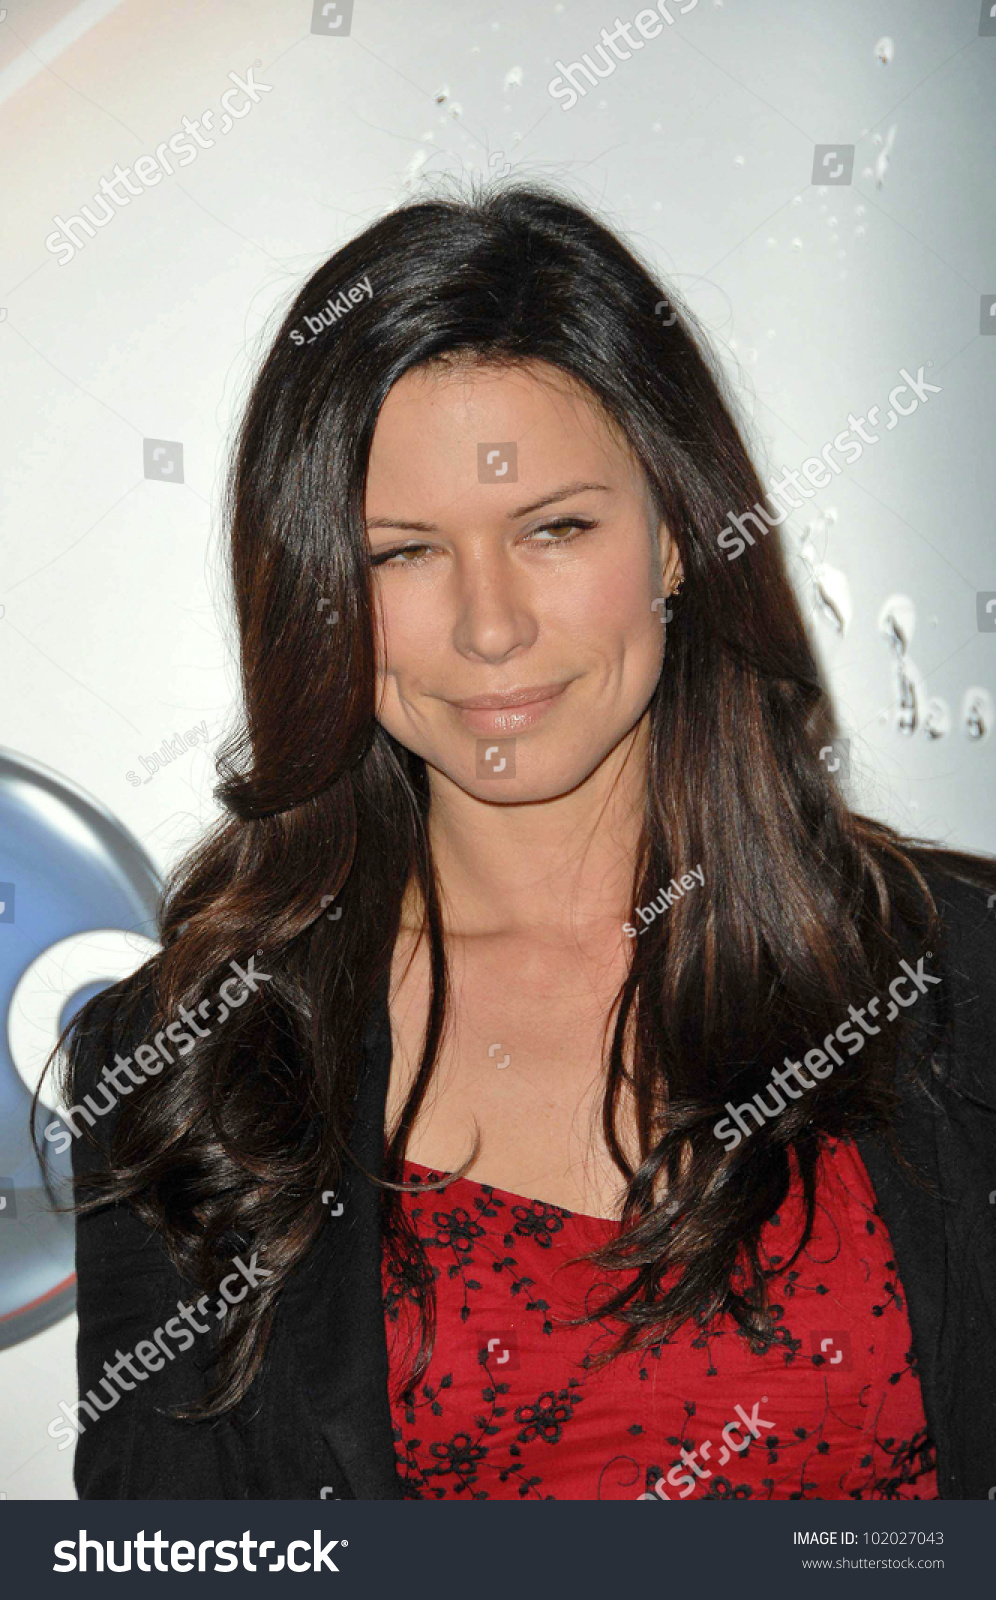 Young Rhona Mitra nudes (31 photos), Tits, Leaked, Instagram, butt 2019